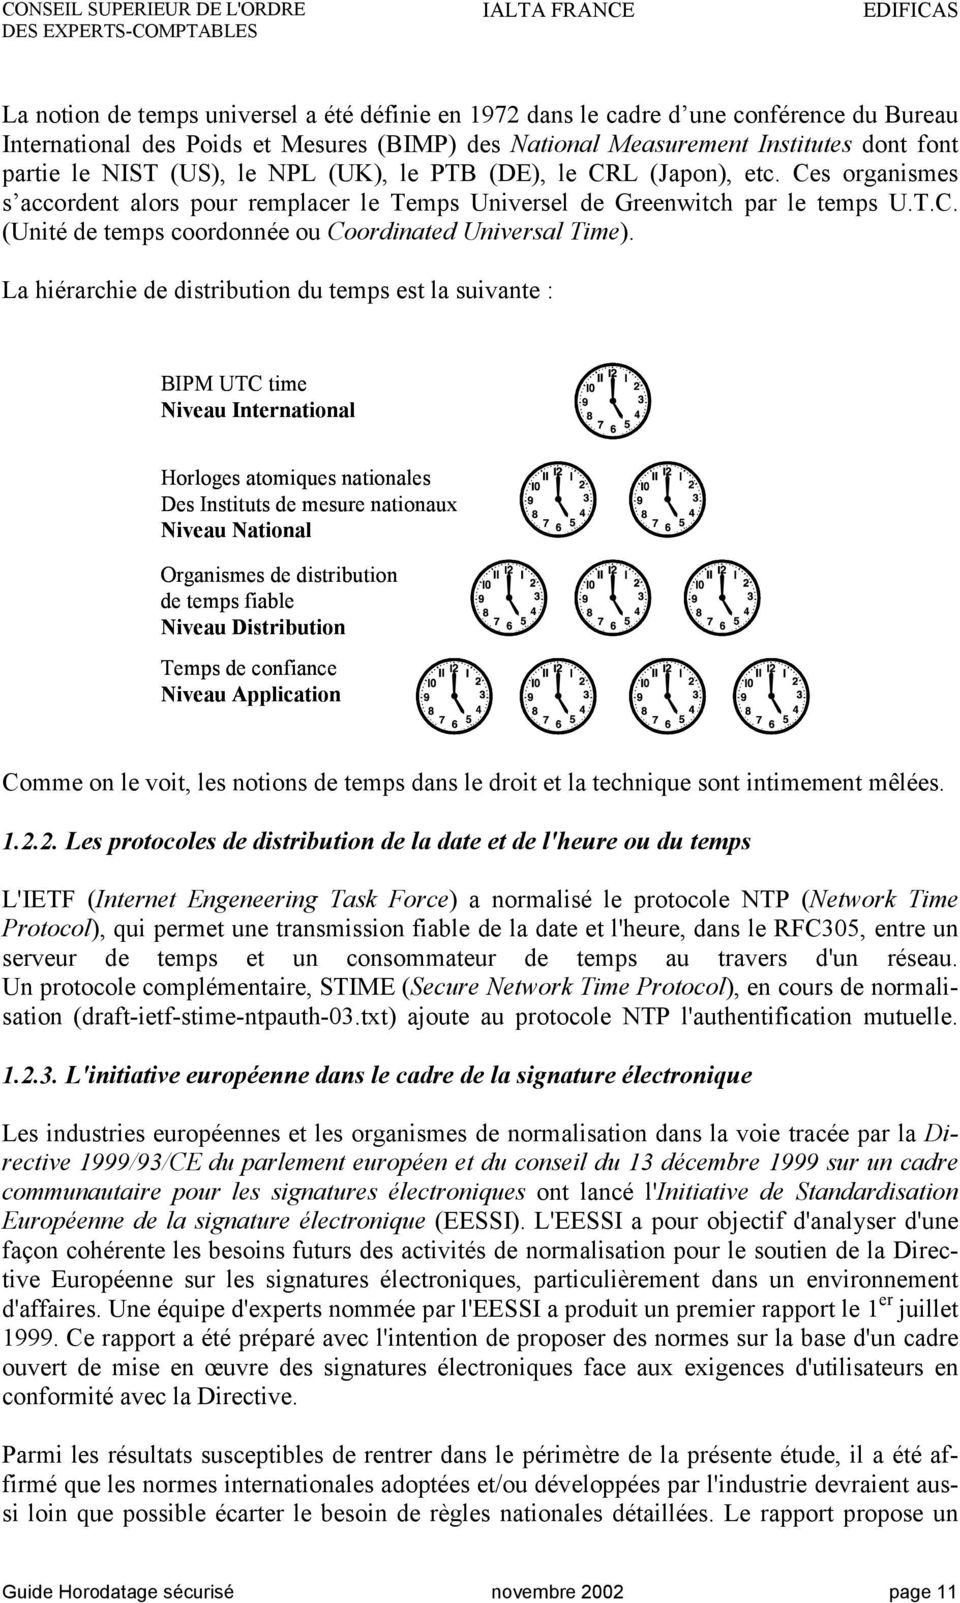 La hiérarchie de distribution du temps est la suivante : BIPM UTC time Niveau International Horloges atomiques nationales Des Instituts de mesure nationaux Niveau National Organismes de distribution